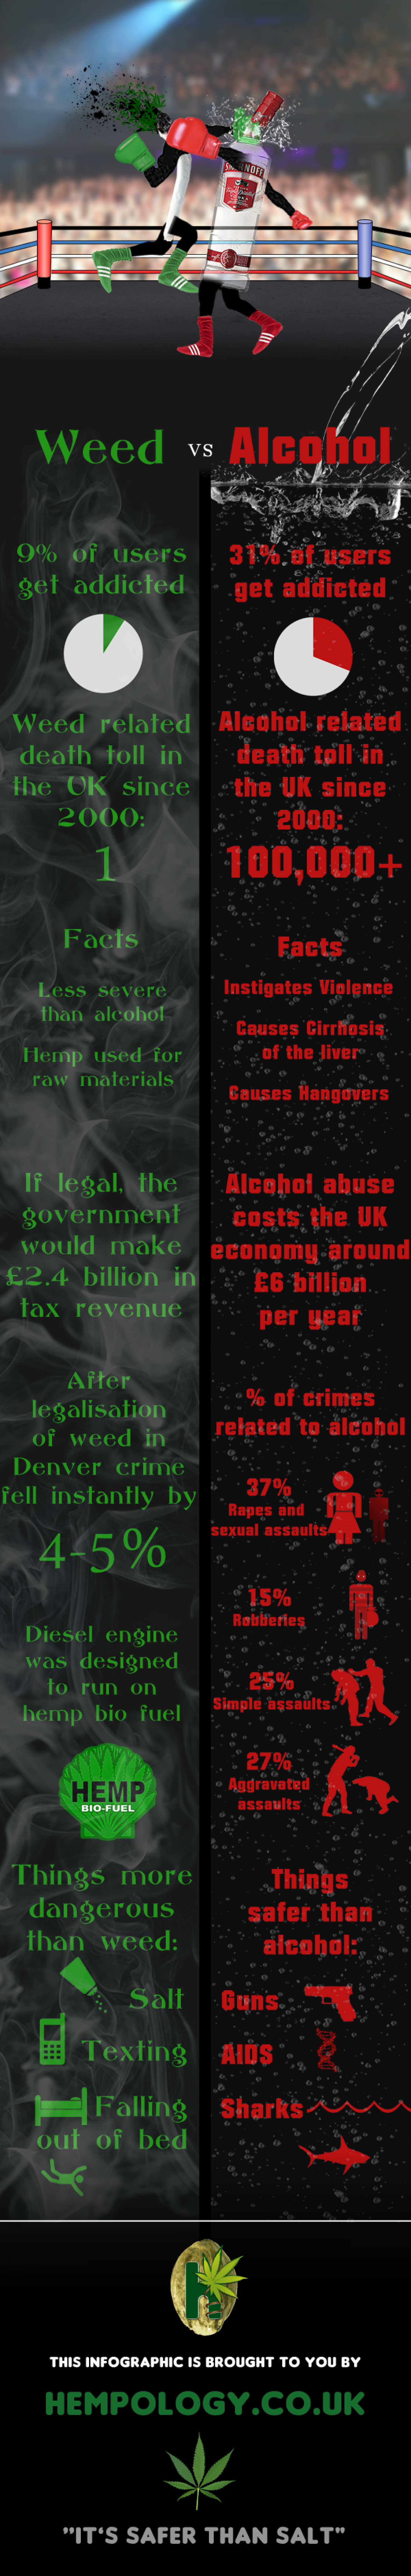 Weed vs Alcohol - An Infographic Infographic